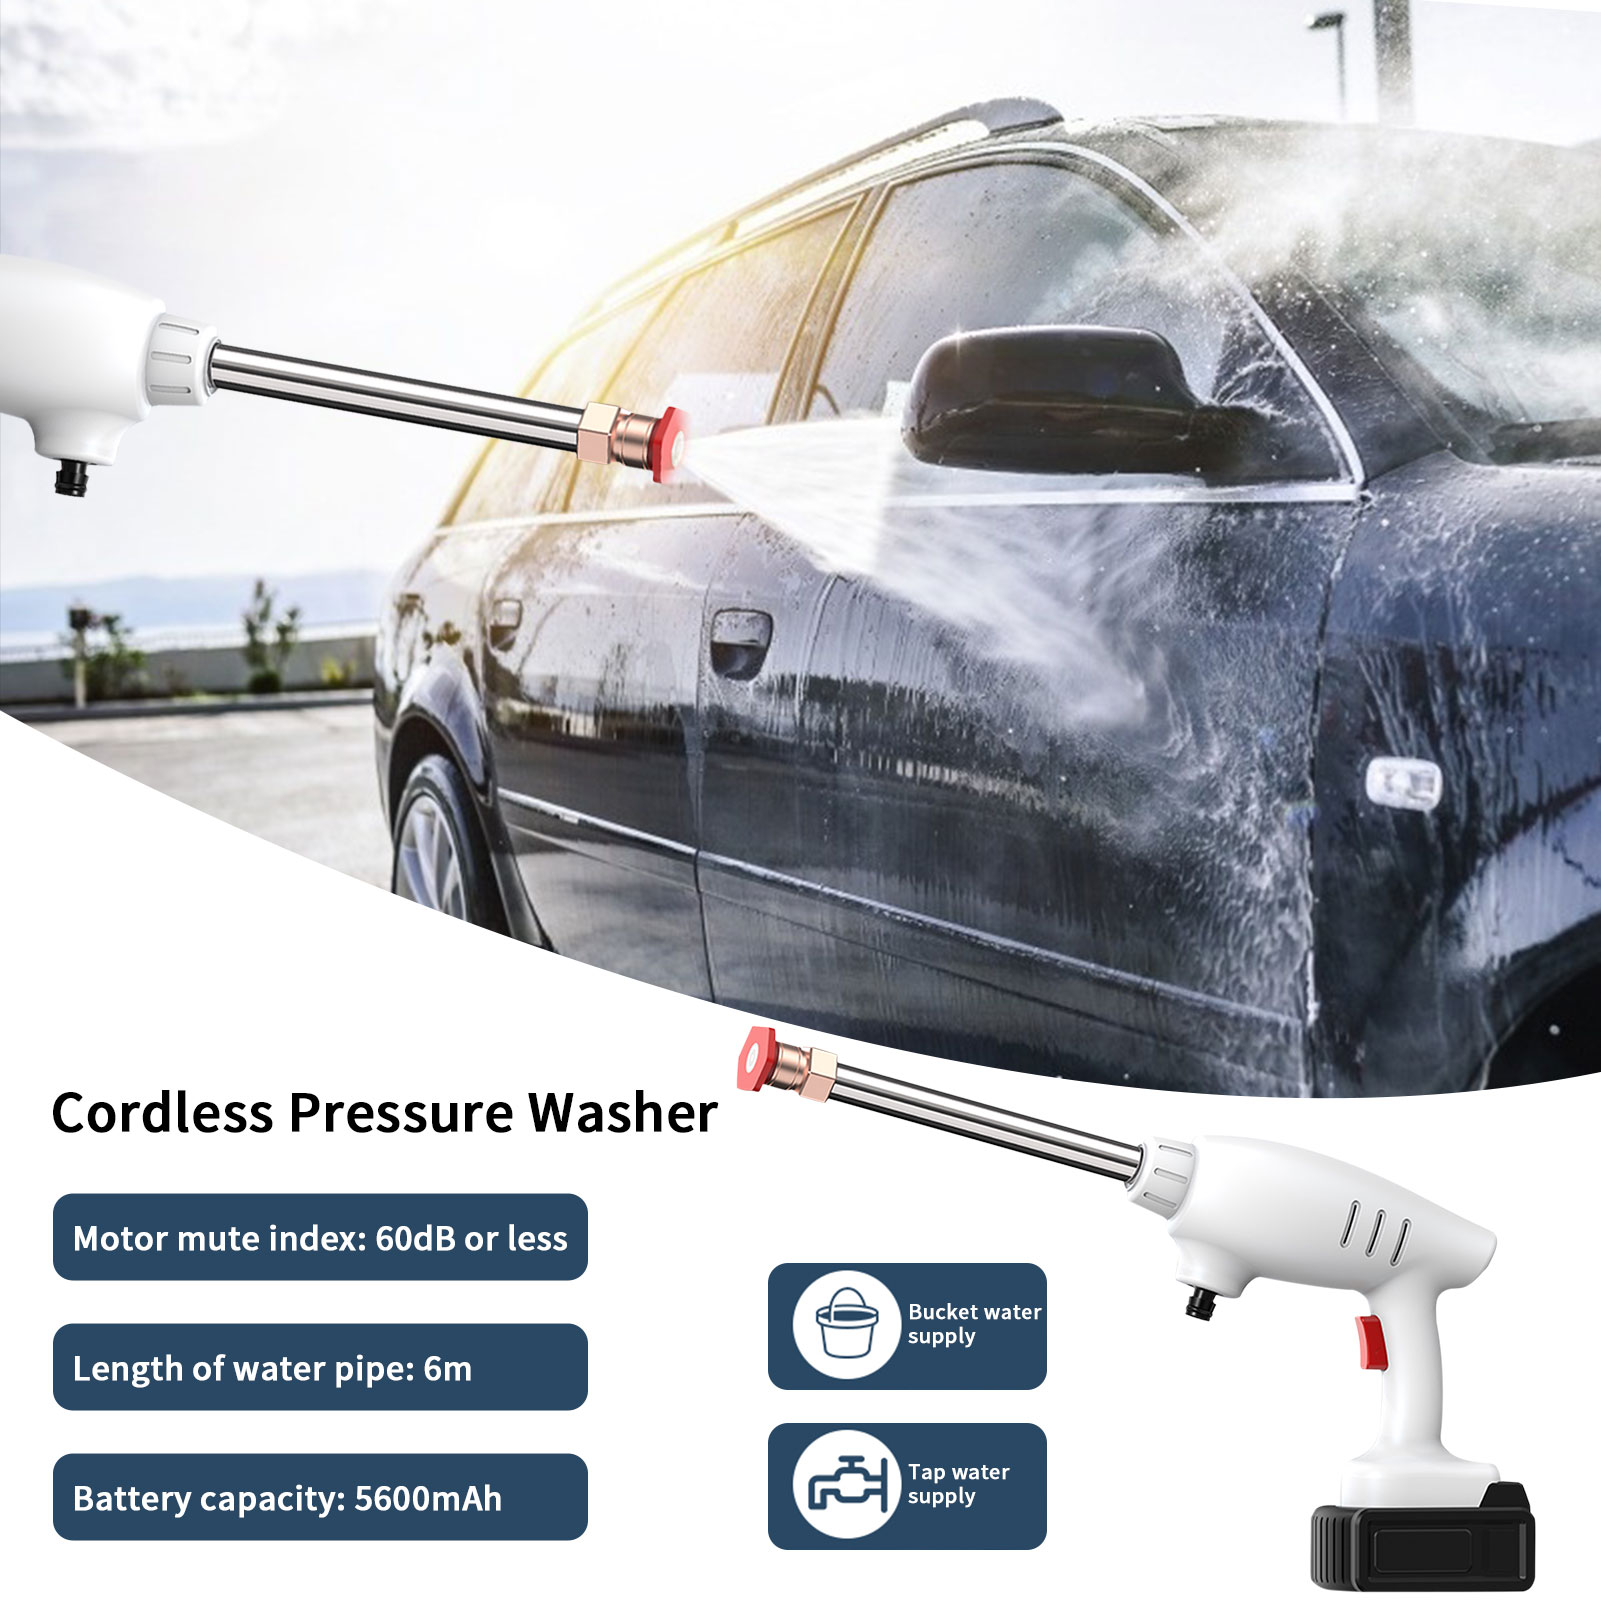 High Pressure Car Washer Gun Auto Device Electric Pressure Washer Cleaning Tool Washer Portable Cordless Car High Power Cleaner